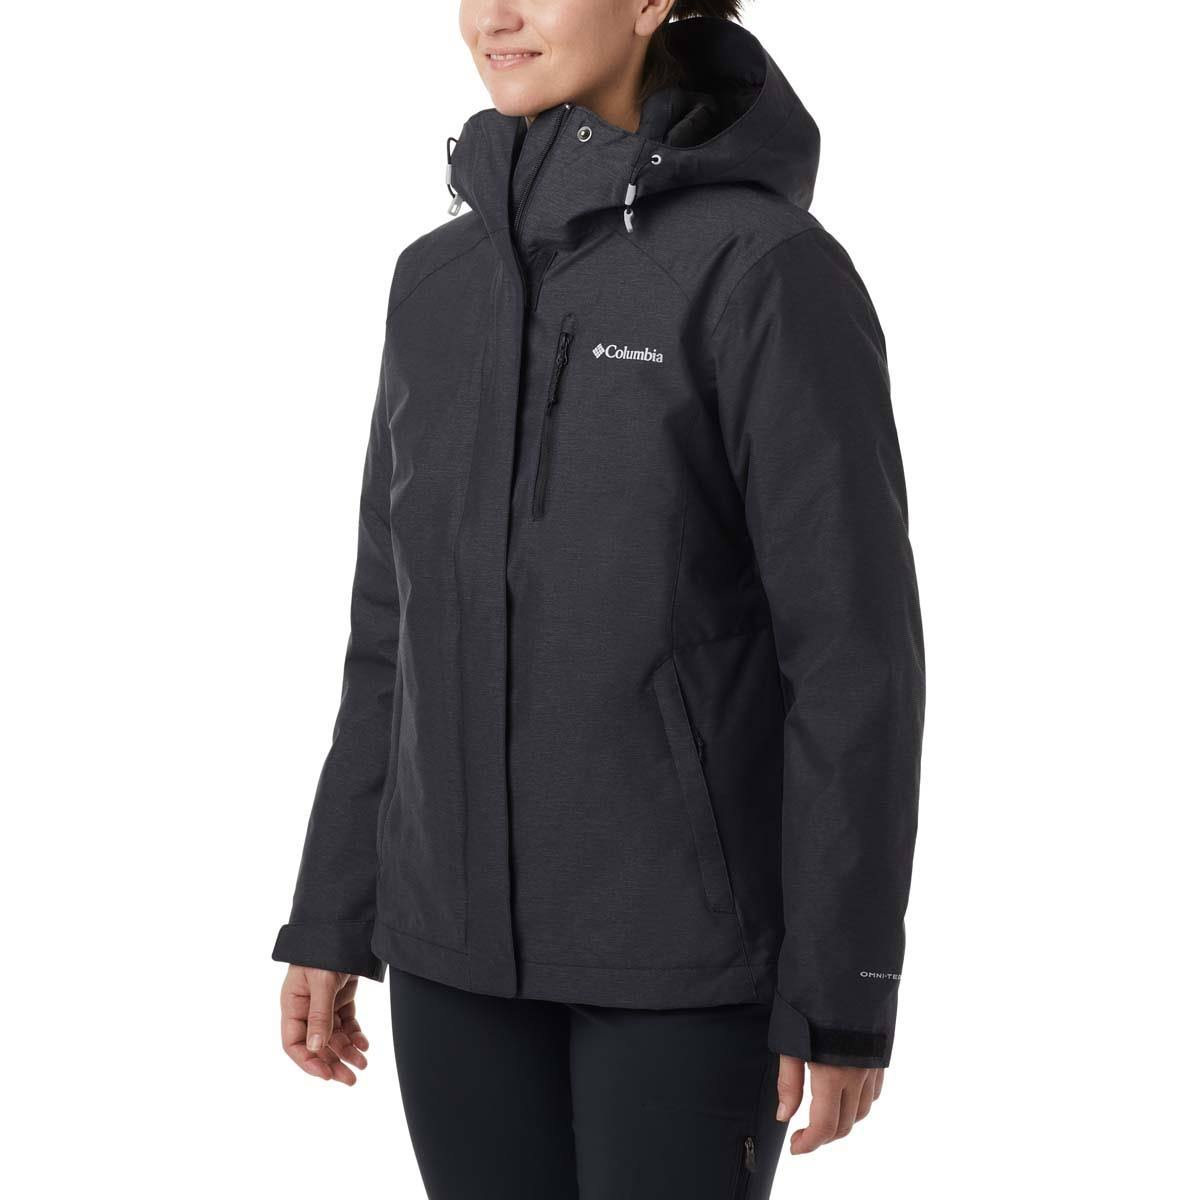 Columbia Whirlibird IV Interchange Jacket - Women's XS Black Crossdye